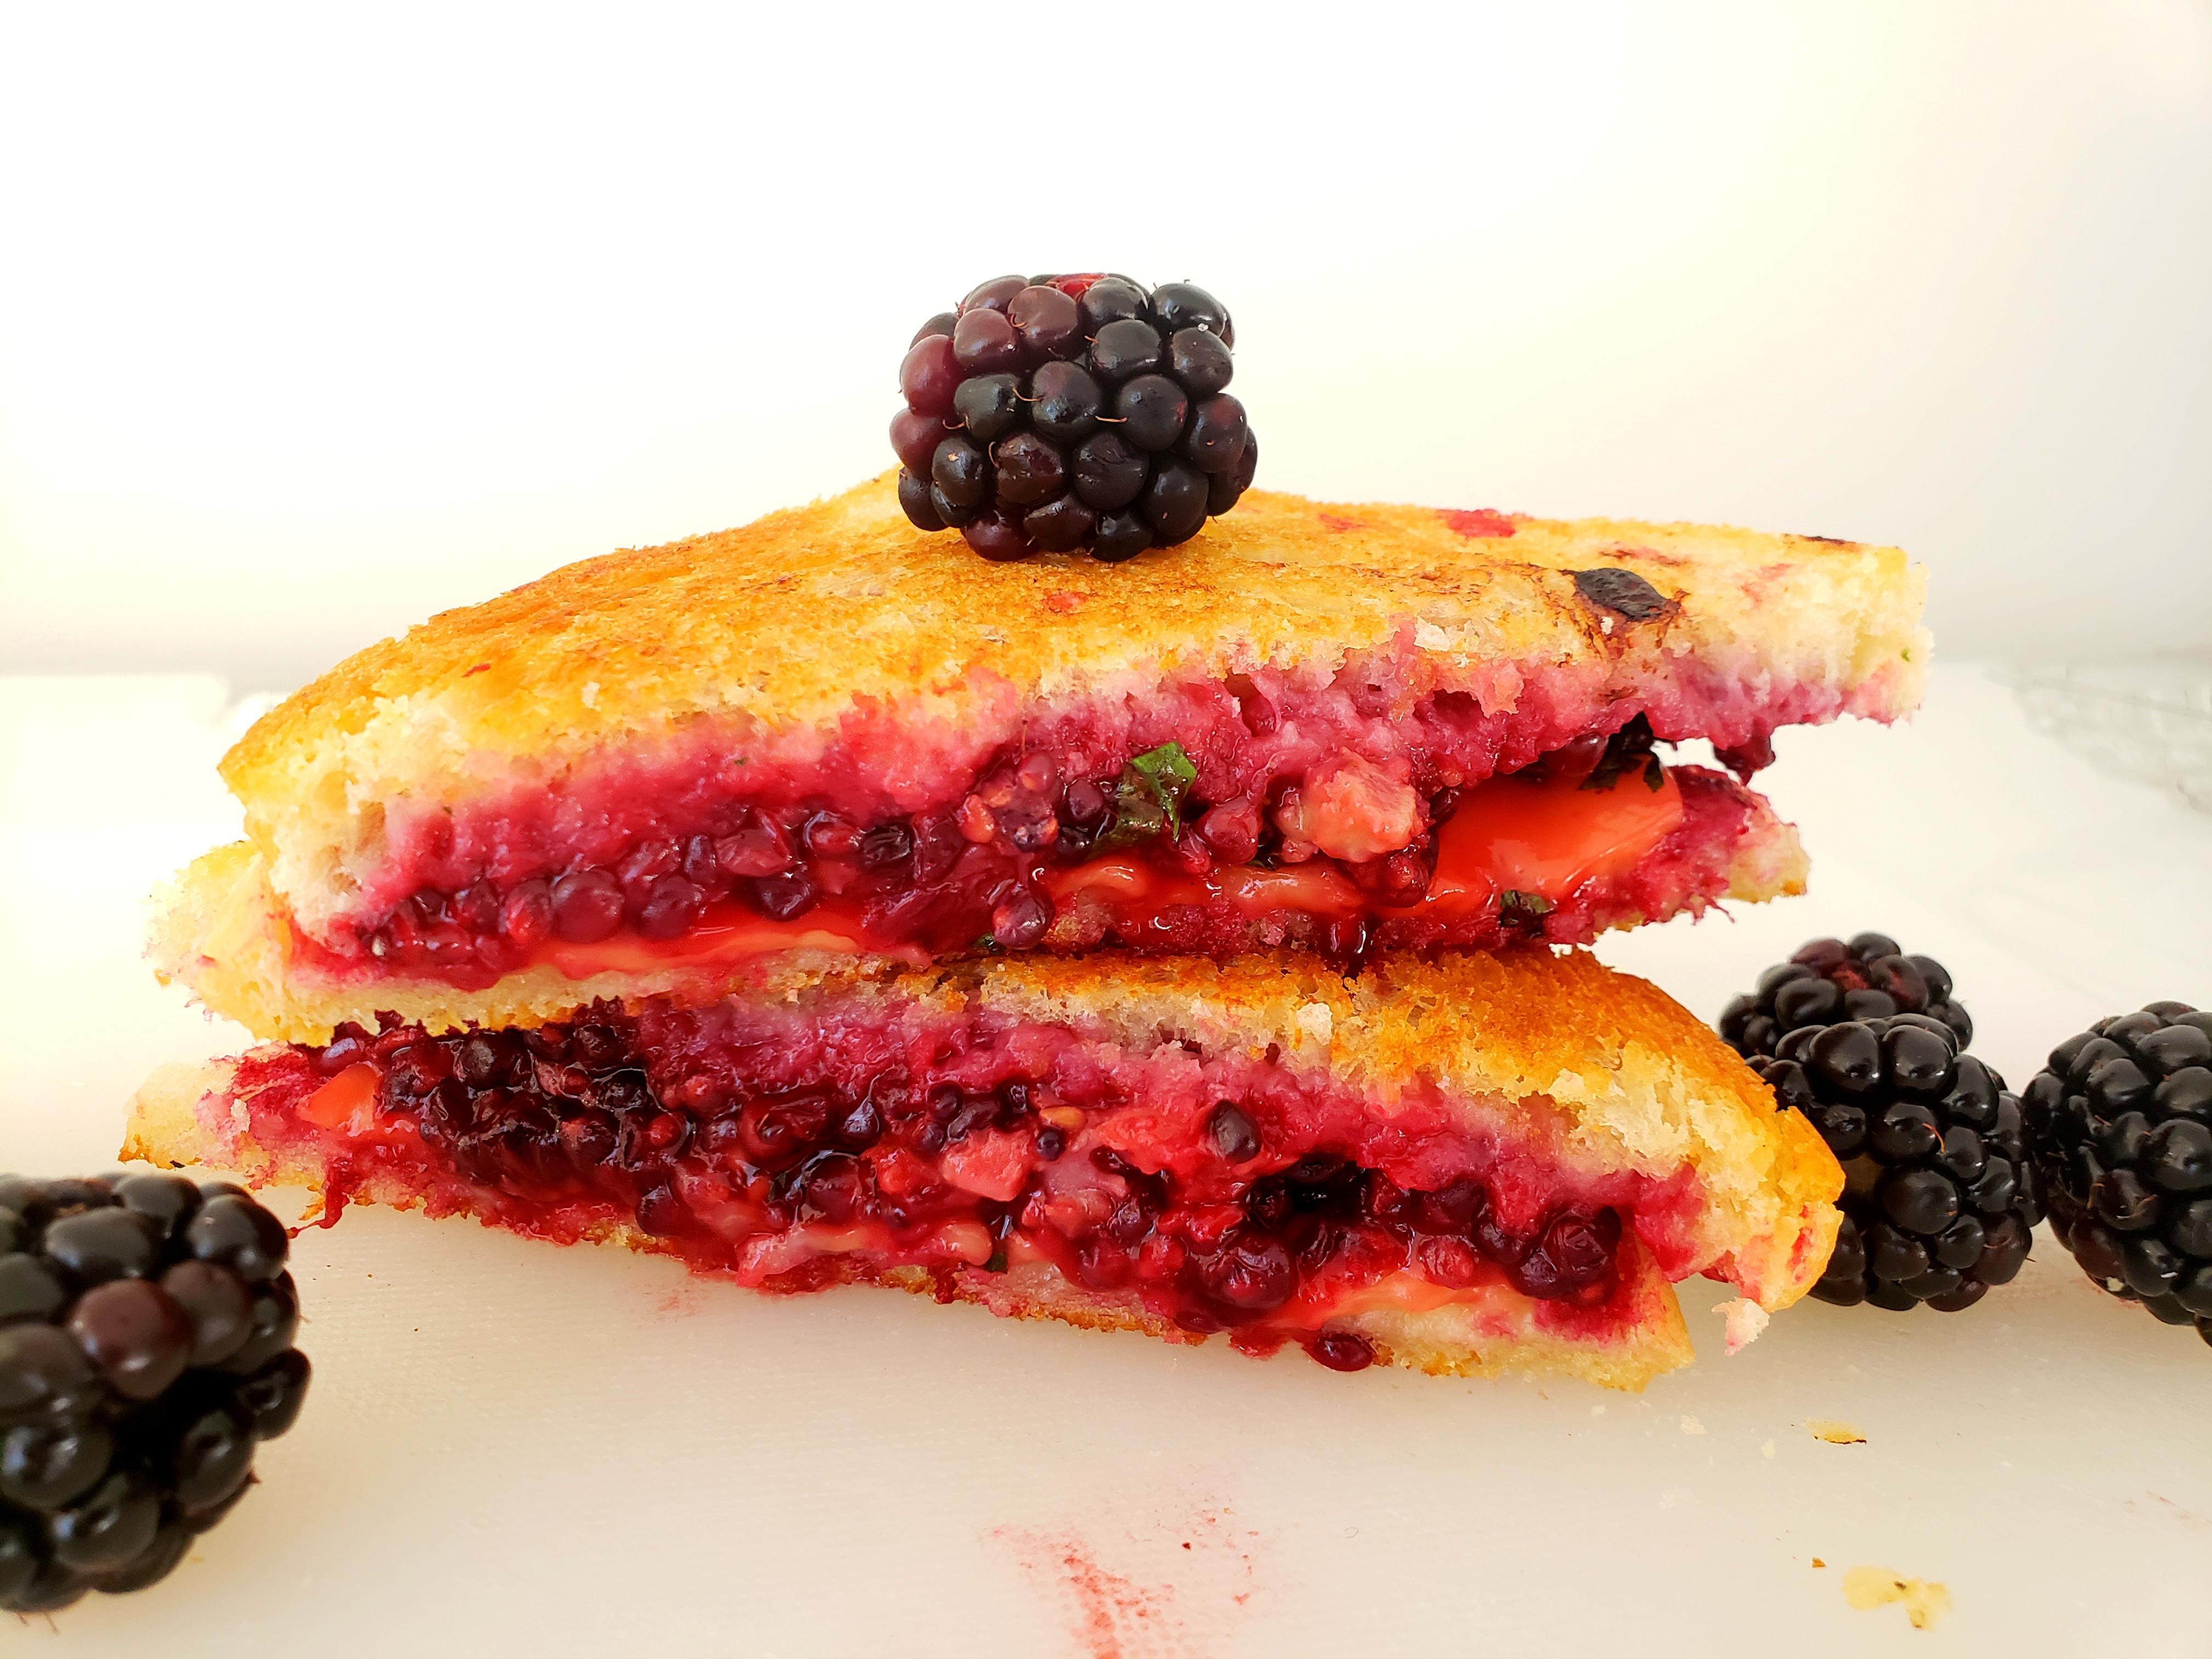 Blackberry Stuffed Grilled Cheese